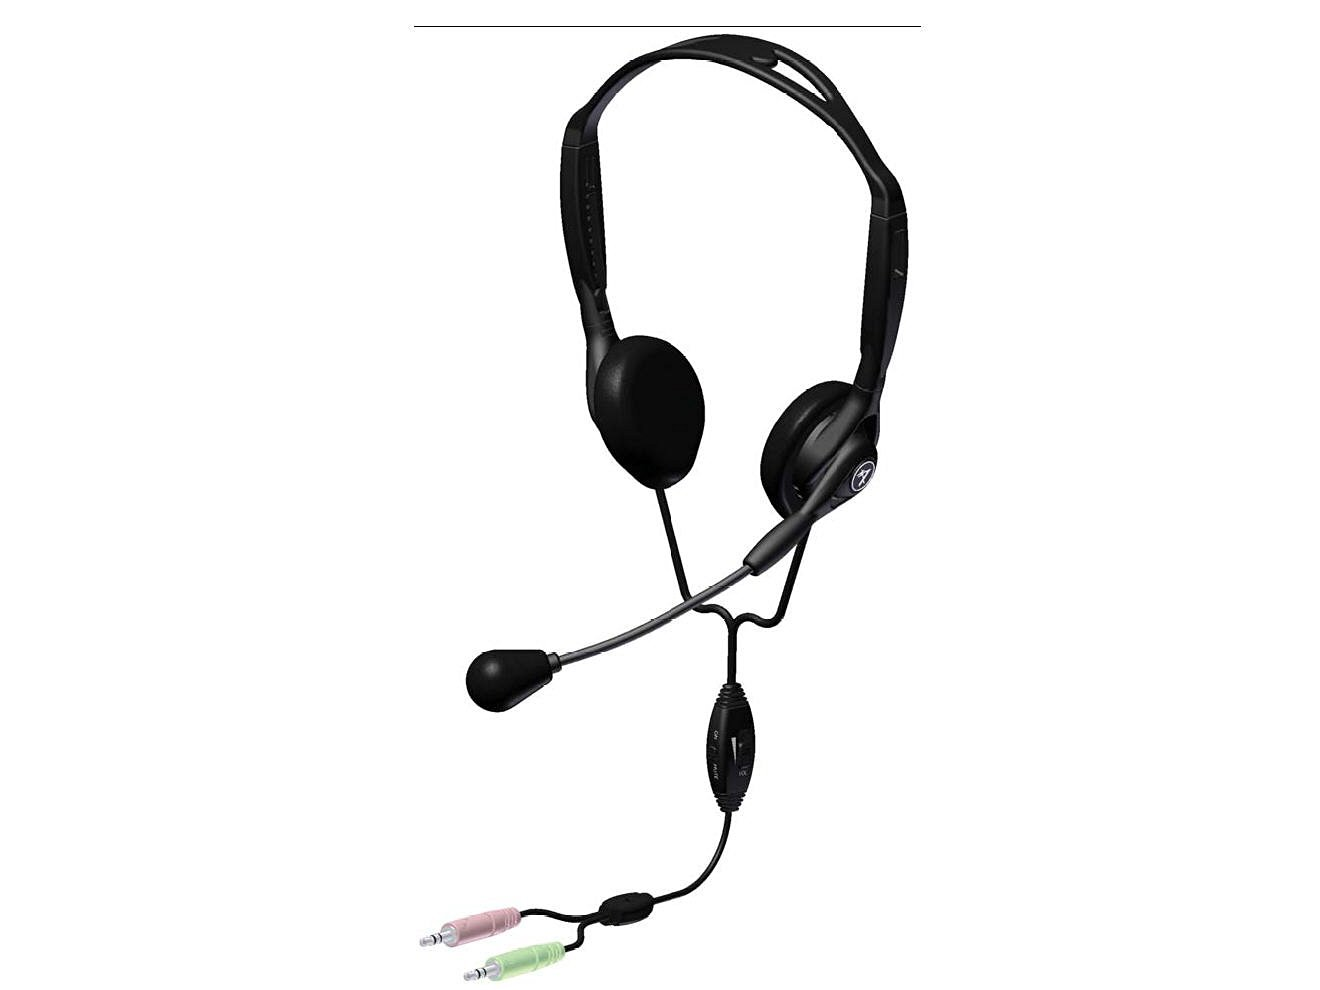 Andrea Communications C1-1023300-1 Model NC-125VM Stereo PC Computer Headset with Noise Canceling Microphone, Inline Volume and Mute Controls, Adjustable Headband, 8 Foot Cable